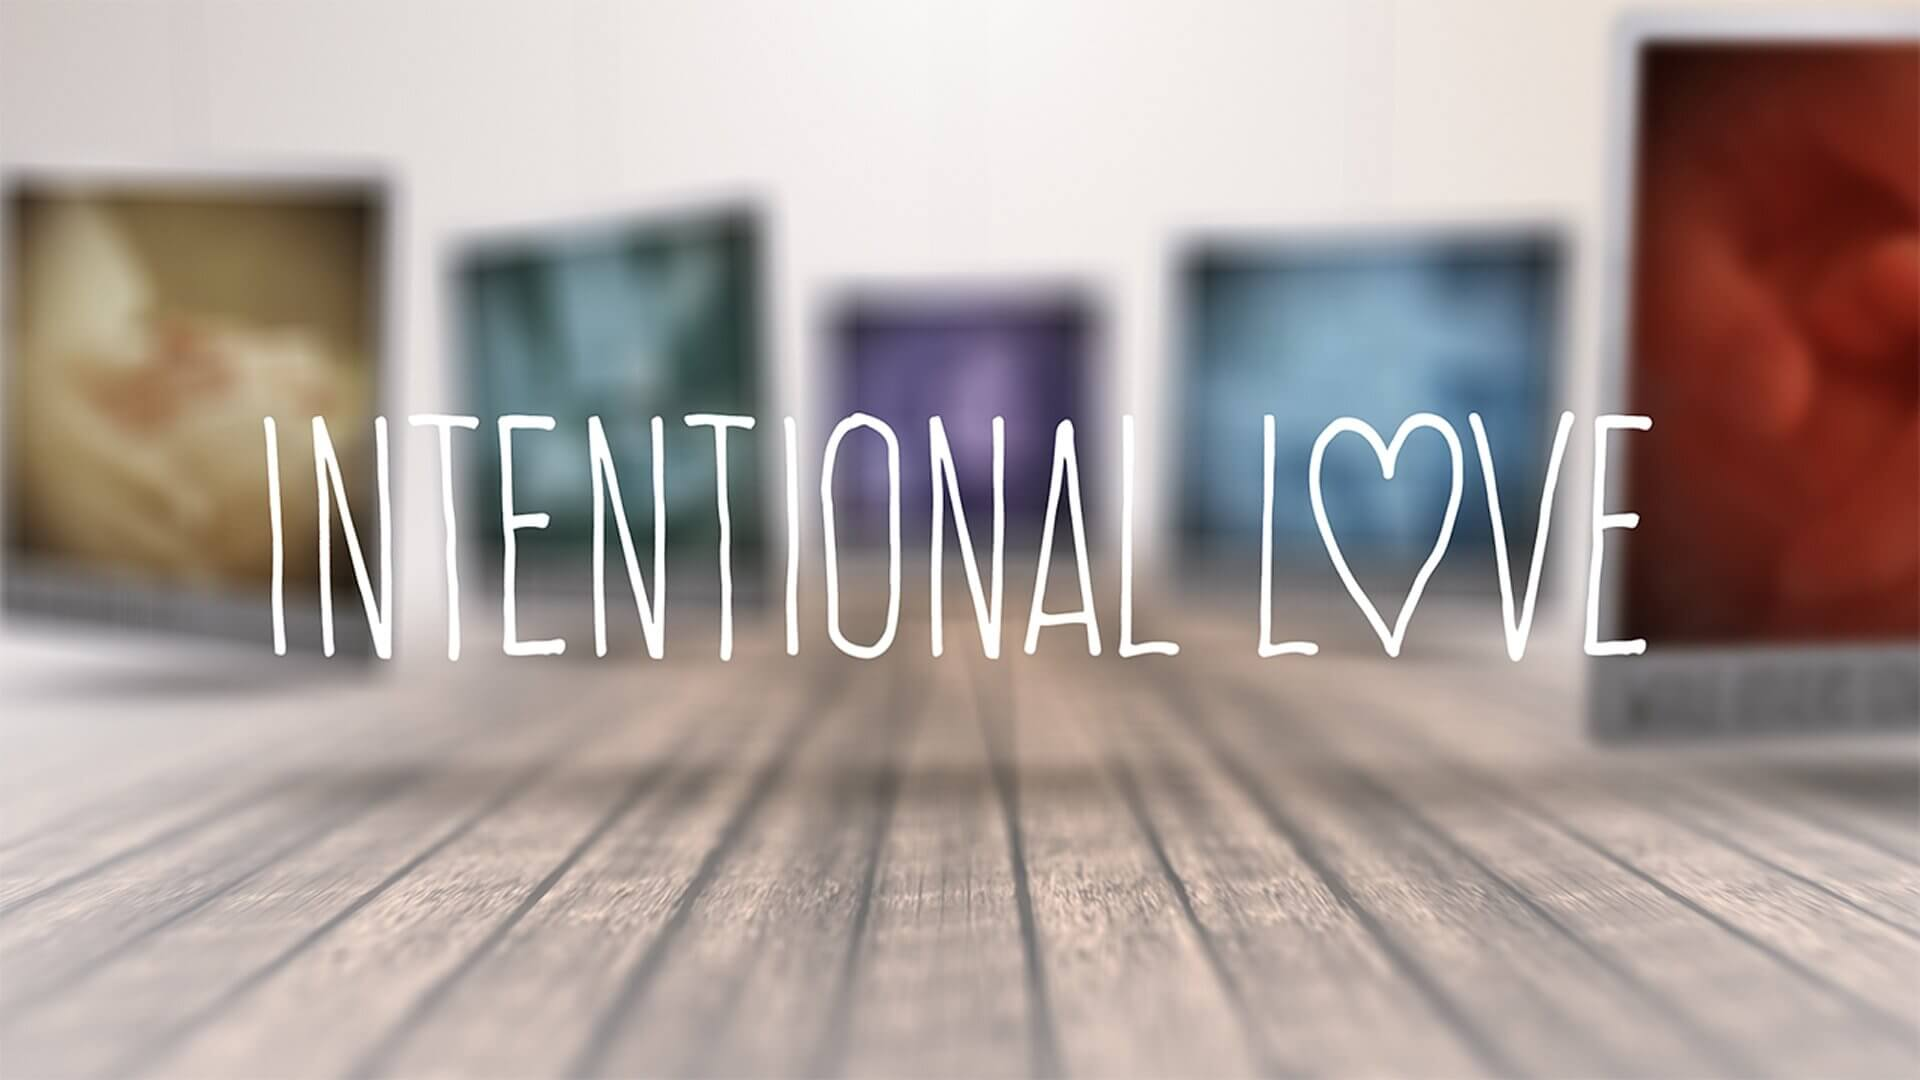 Intentional Love